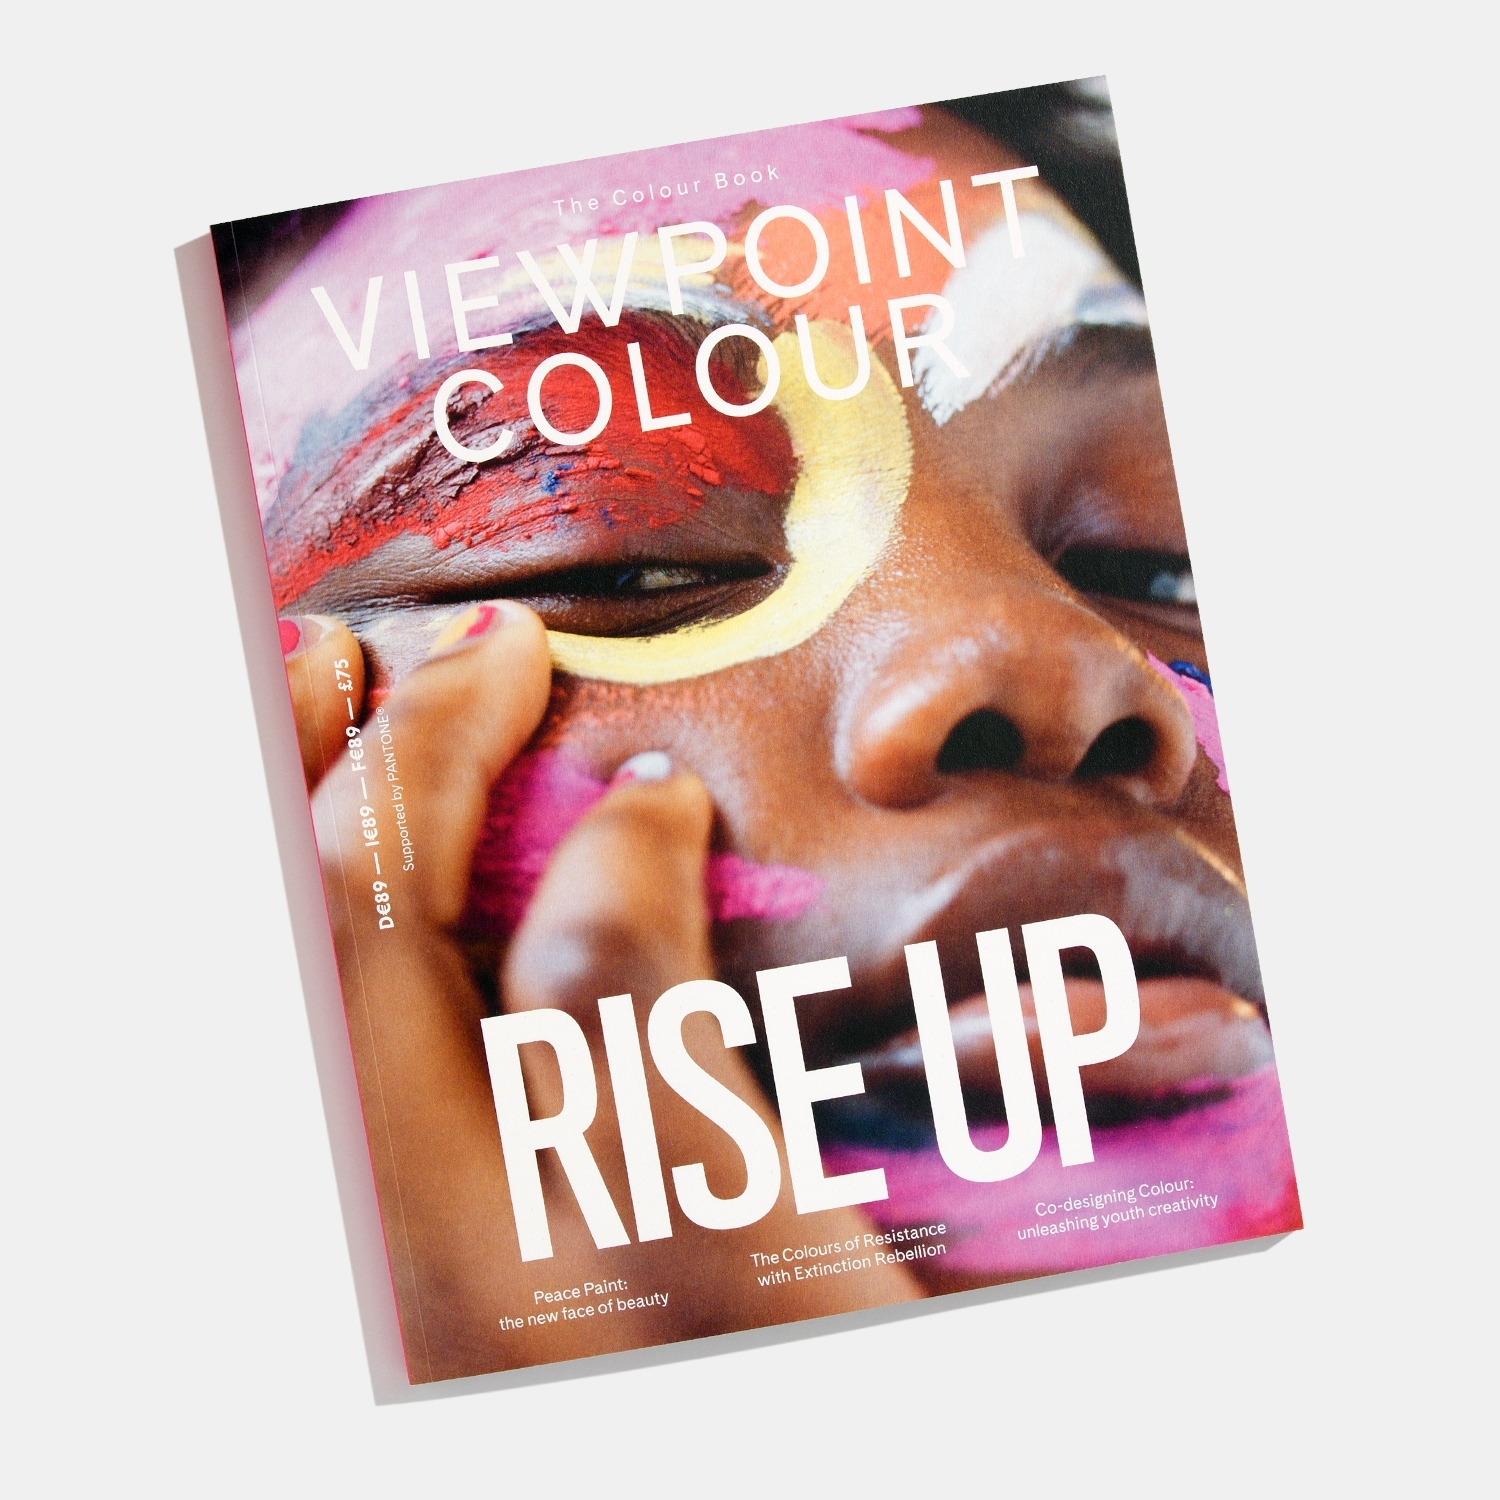 VIEWPOINT COLOUR Issue 06 - Rise Up